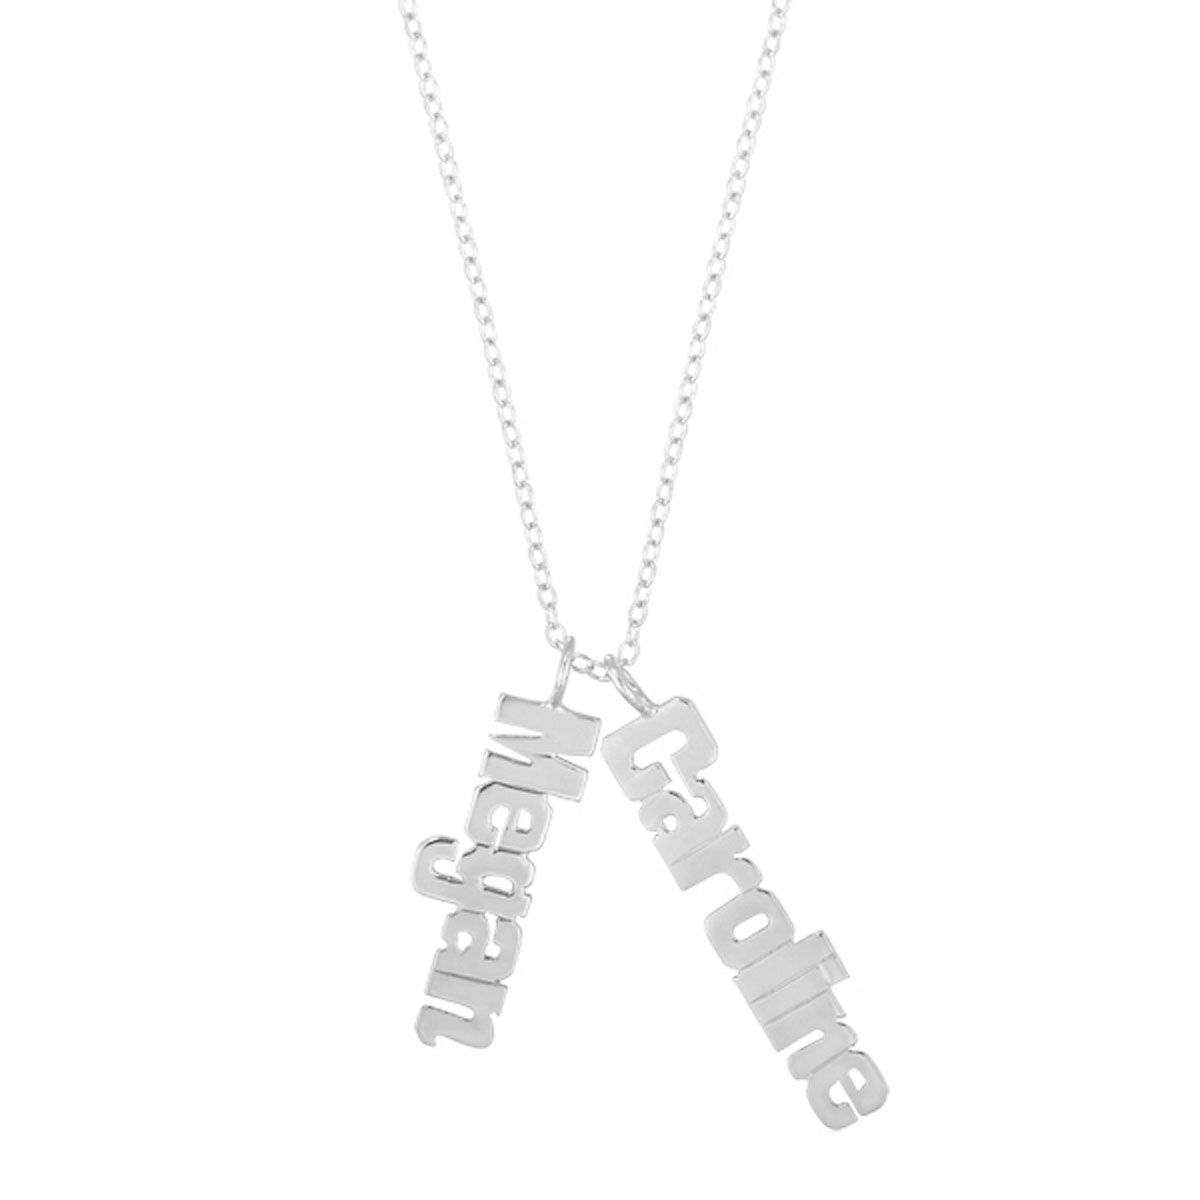 Personalized Silver Vertical Name Plate Necklace